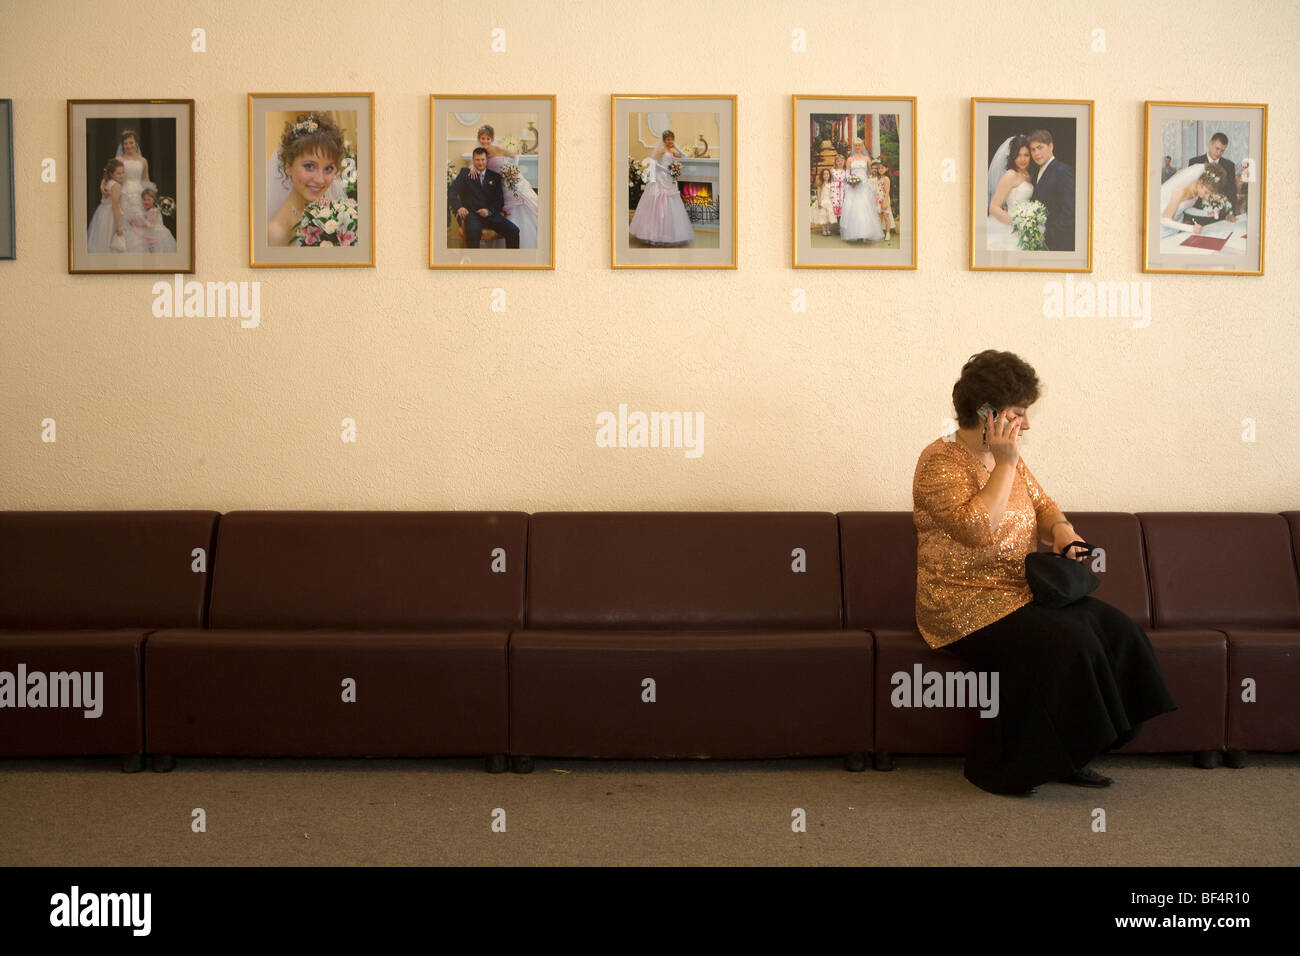 Wedding guest in waiting room with wedding photographs on wall Stock ...